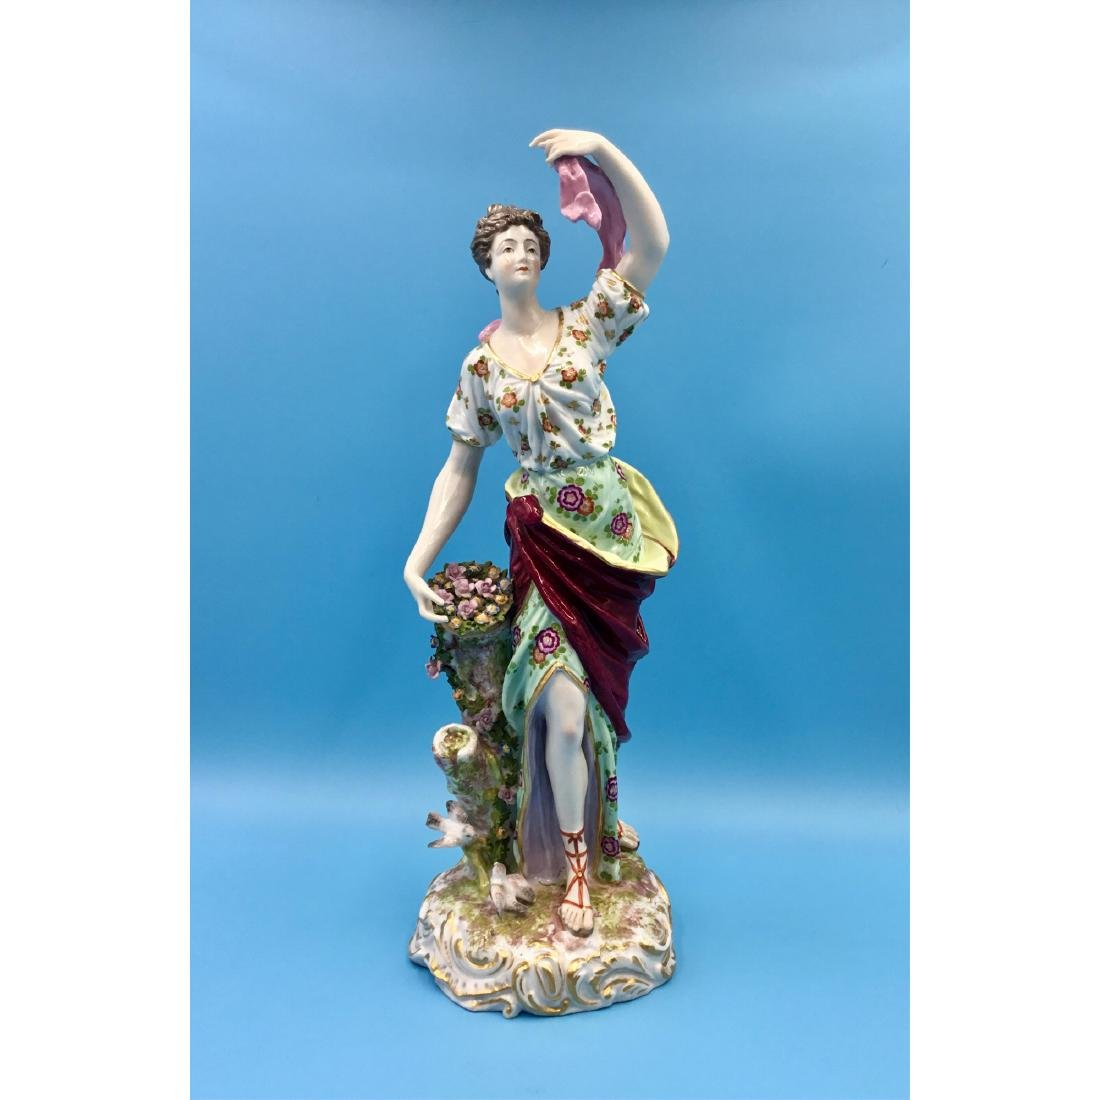 LARGE ARCHILLE BLOCH FRENCH STATUE FIGURINE